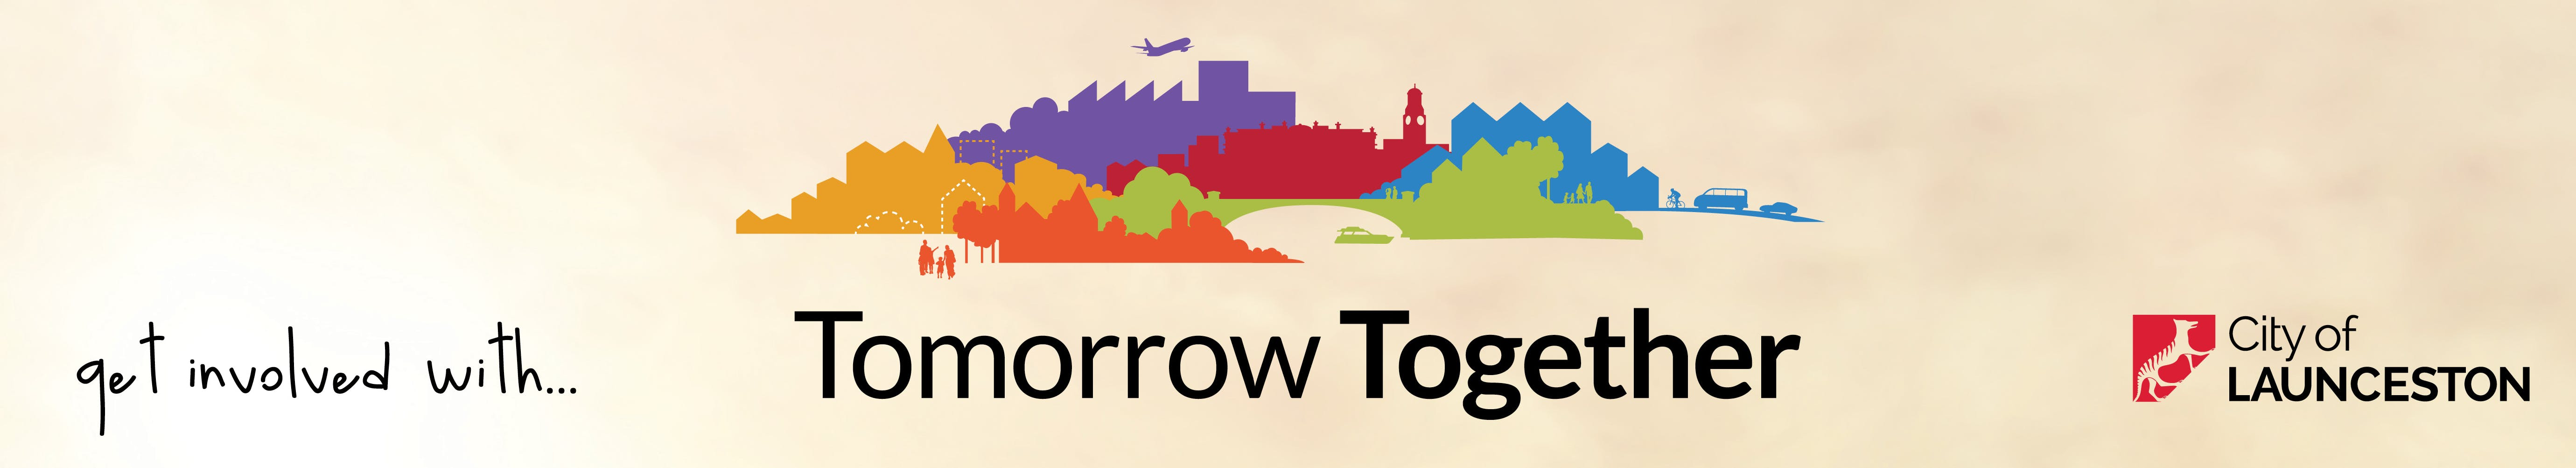 Tomorrow Together Web Page Banner